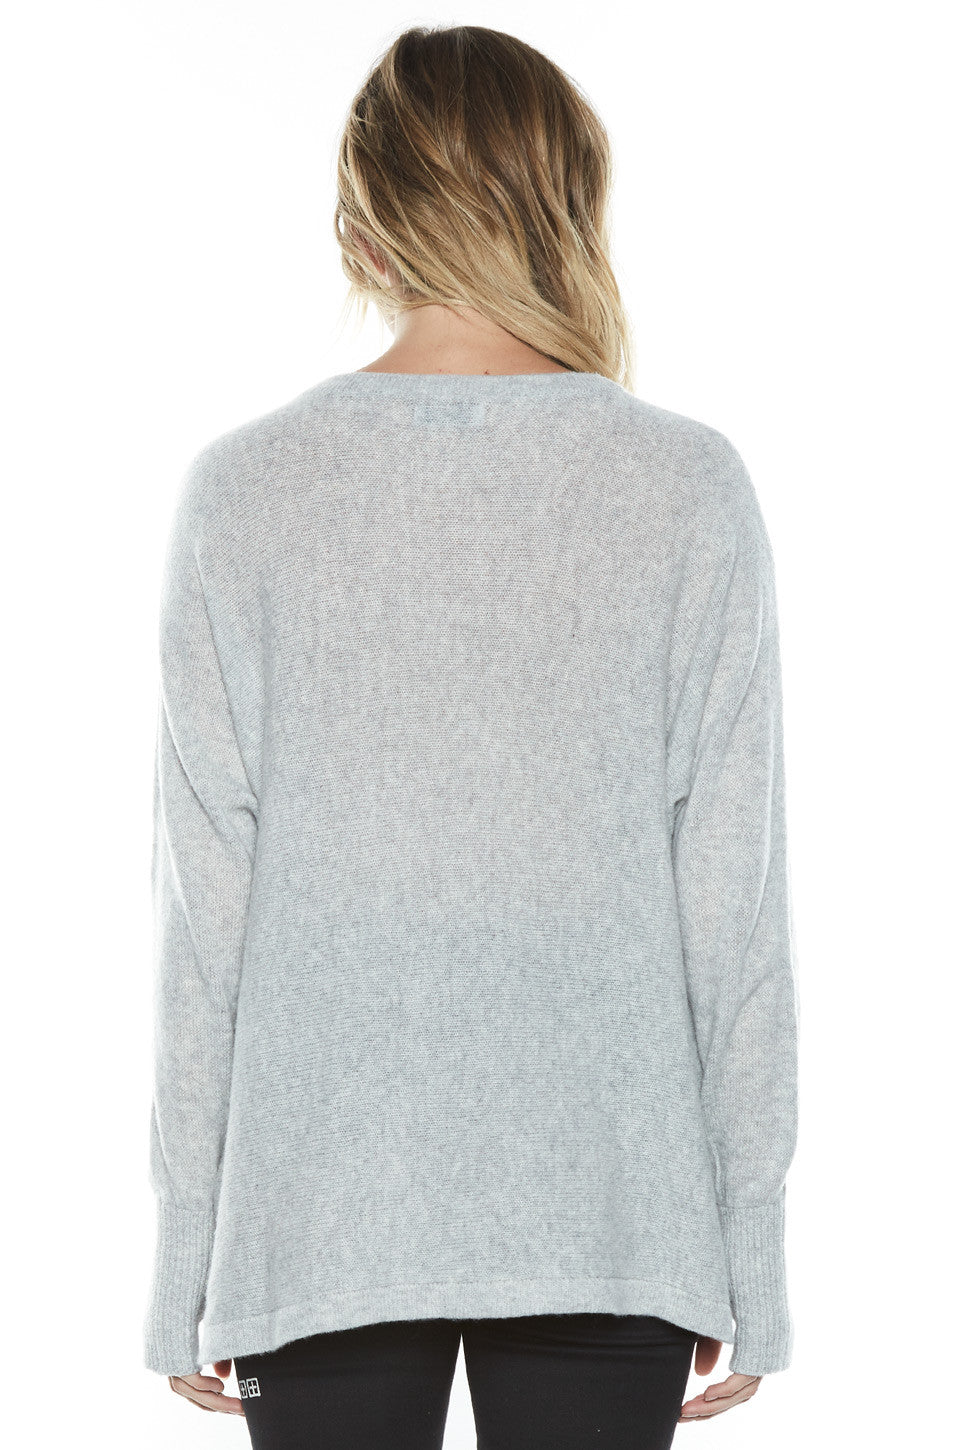 Lauren Moshi Women's Hollis Heart Breaker L/S Cashmere Pullover Sweater w/Thumbholes